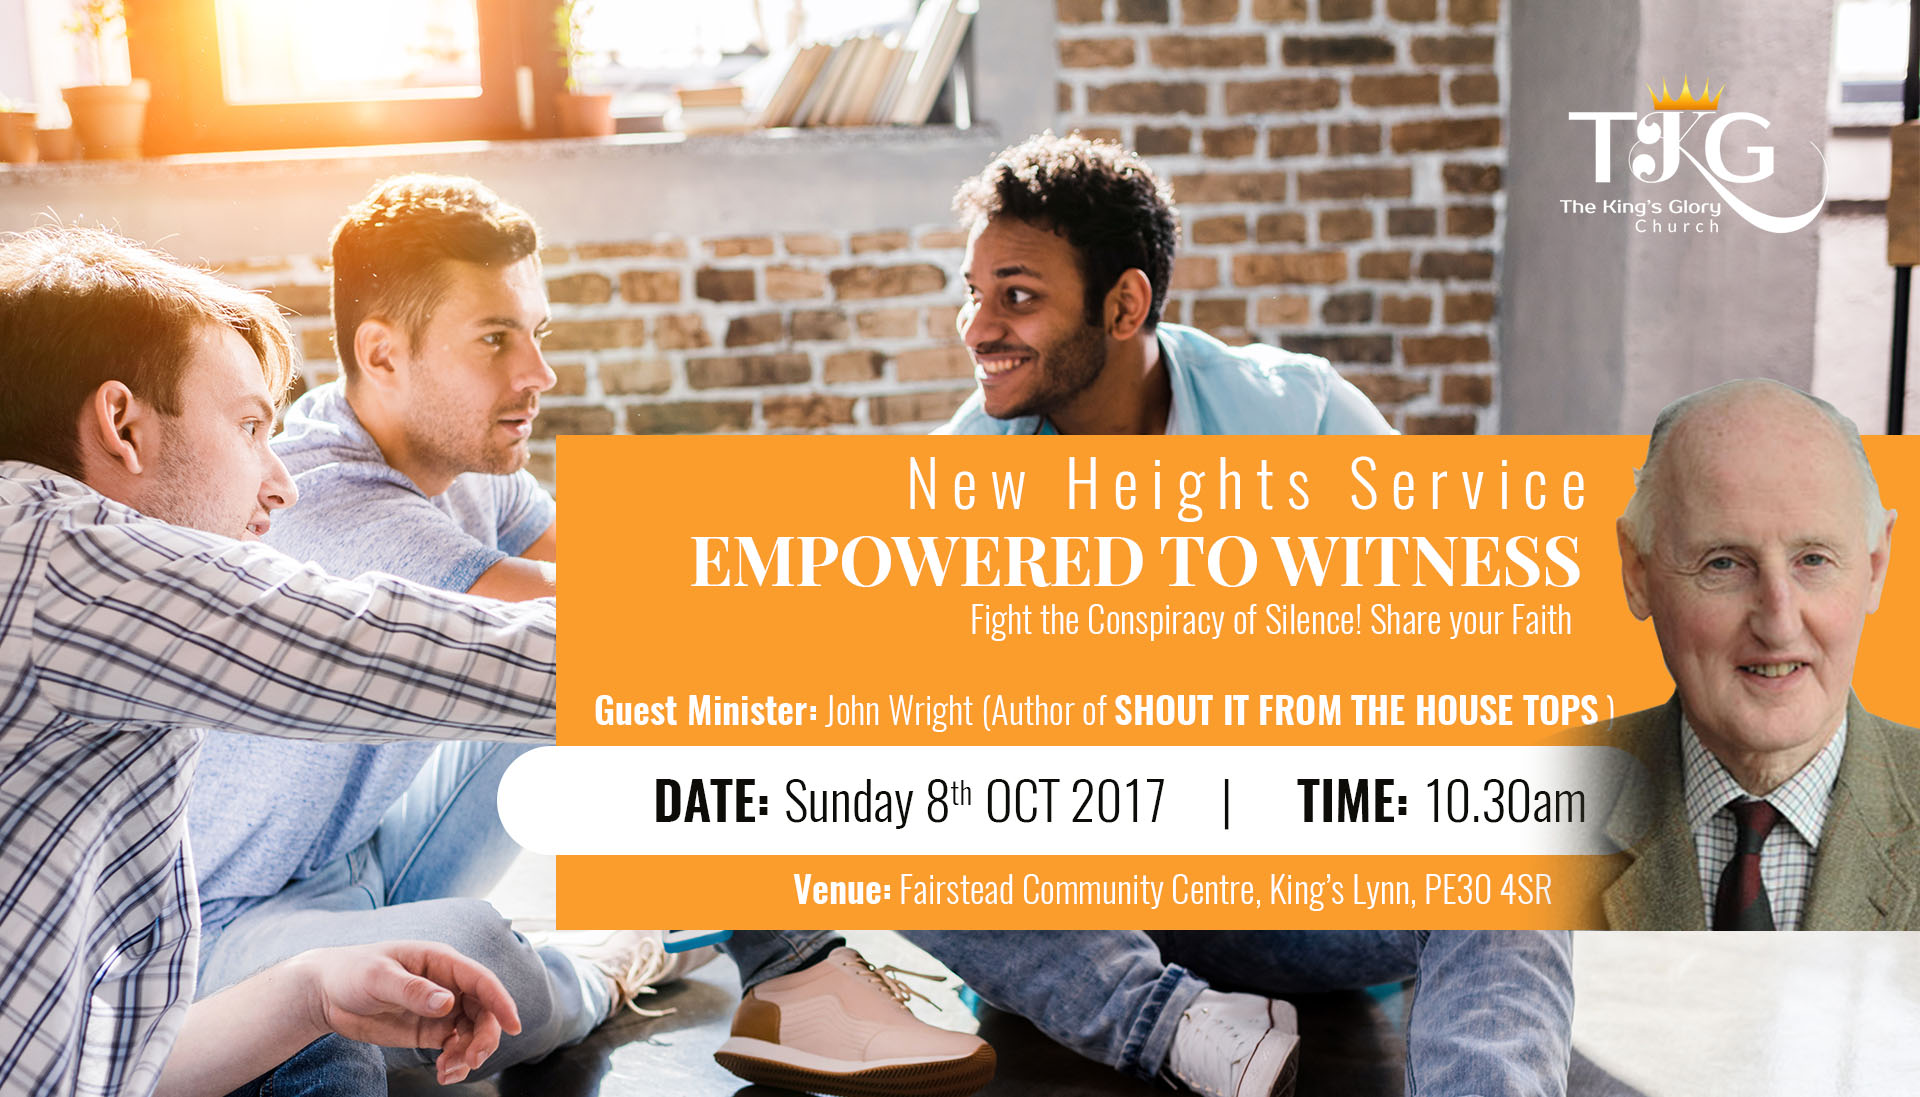 Empowered to Witness (New Heights) Sunday 8th October